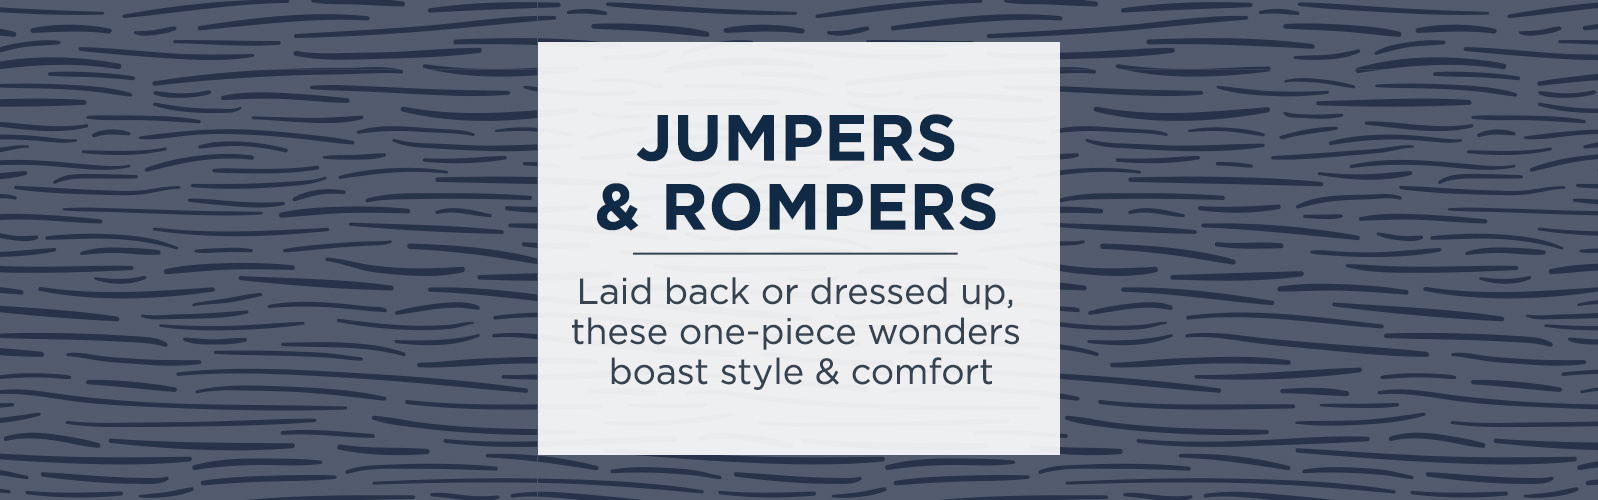 Jumpers & Rompers  Laid back or dressed up, these one-piece wonders boast style & comfort